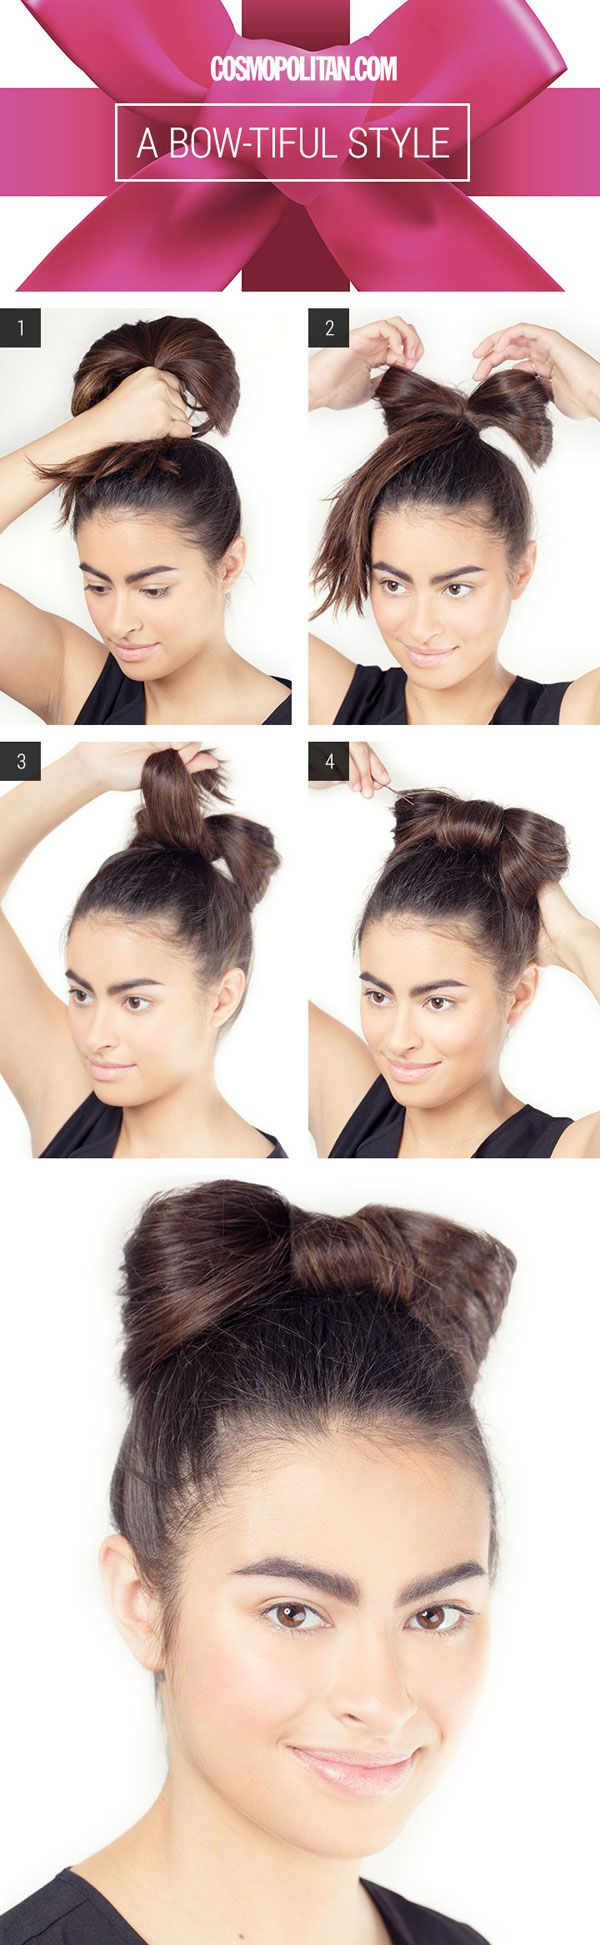 cool hair styles for with hair best 25 bow hairstyles ideas on hair bow 8471